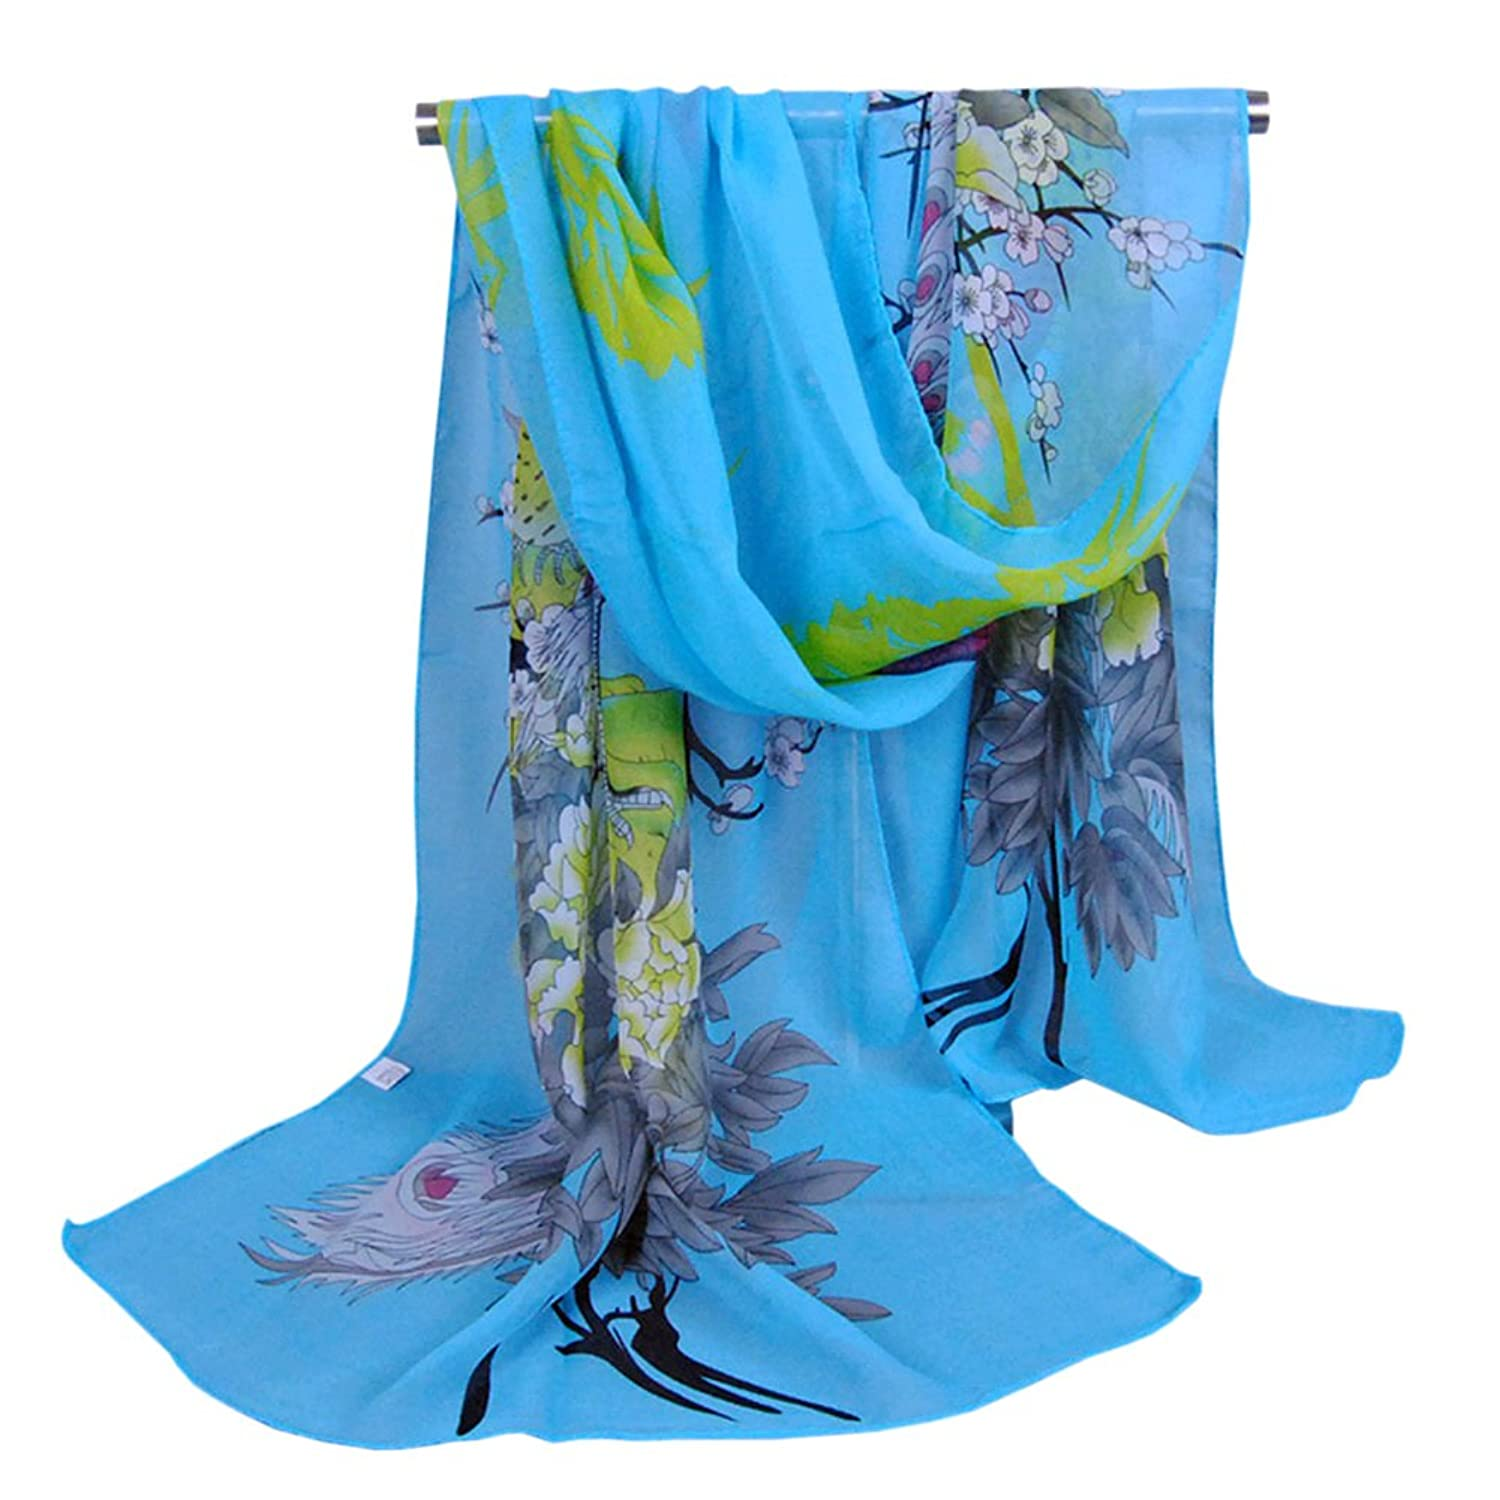 New Women Fashion Girls Long Soft Chiffon Scarf Wrap Shawl Scarves Stole